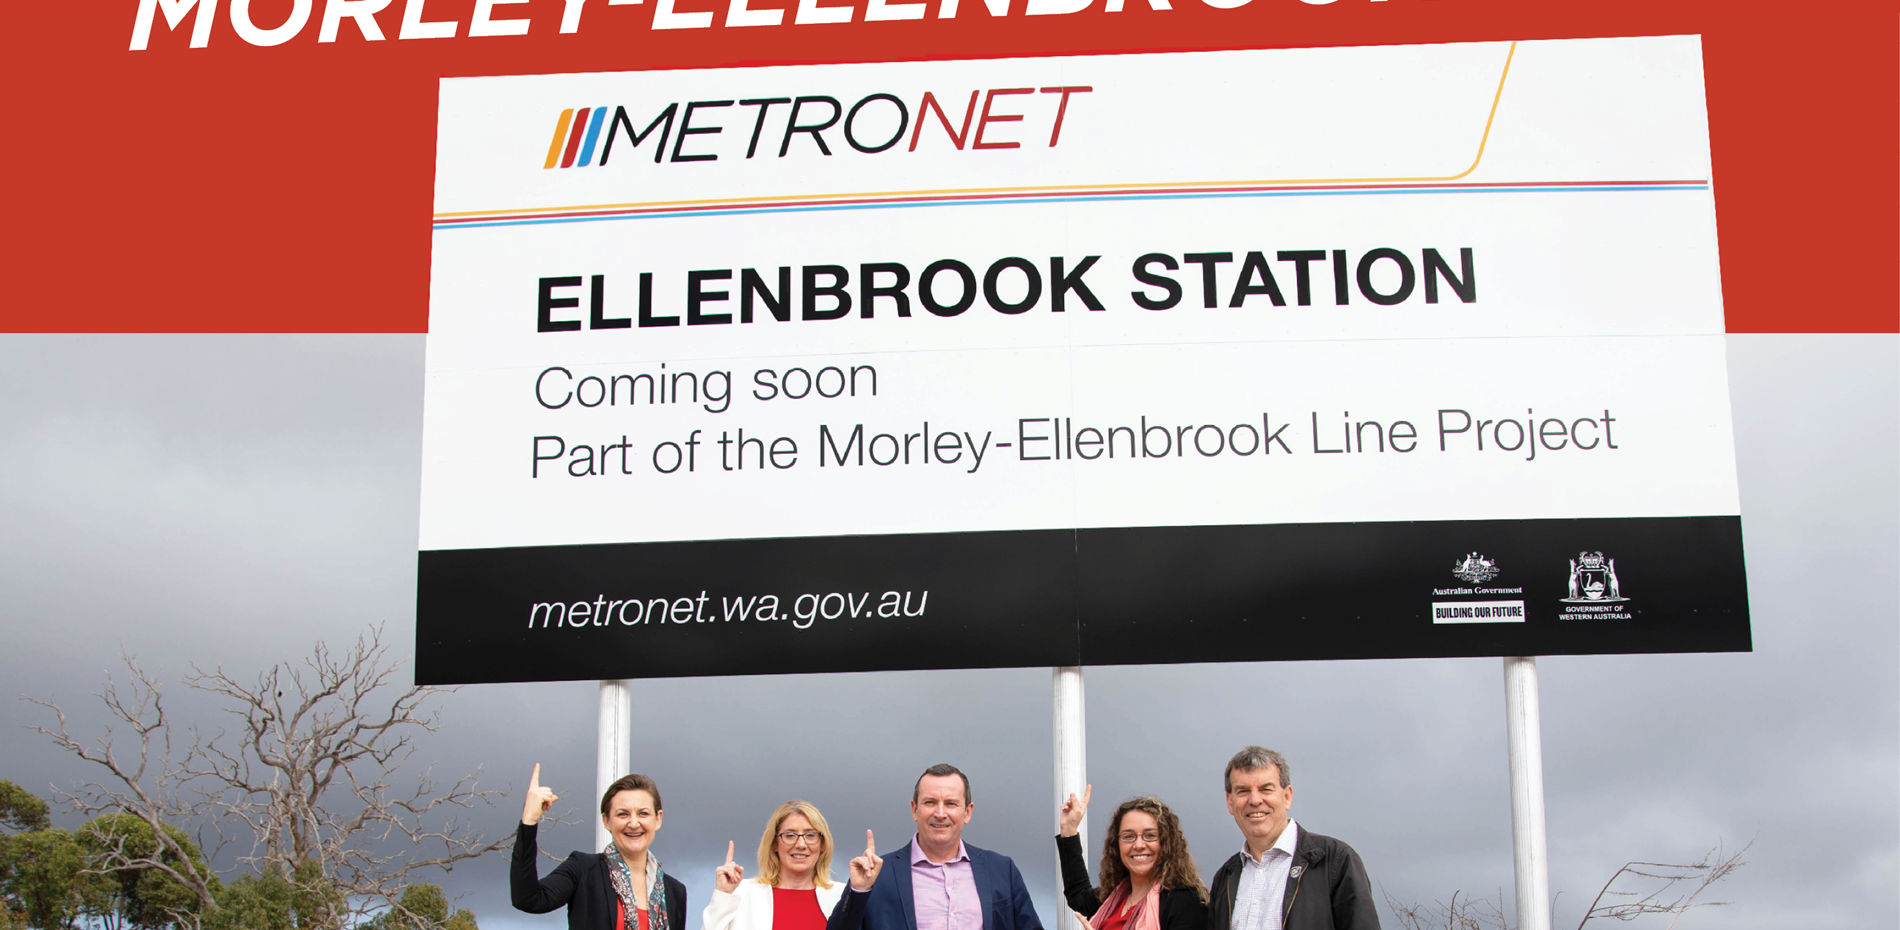 Community excited about METRONET coming to Ellenbrook   Main Image